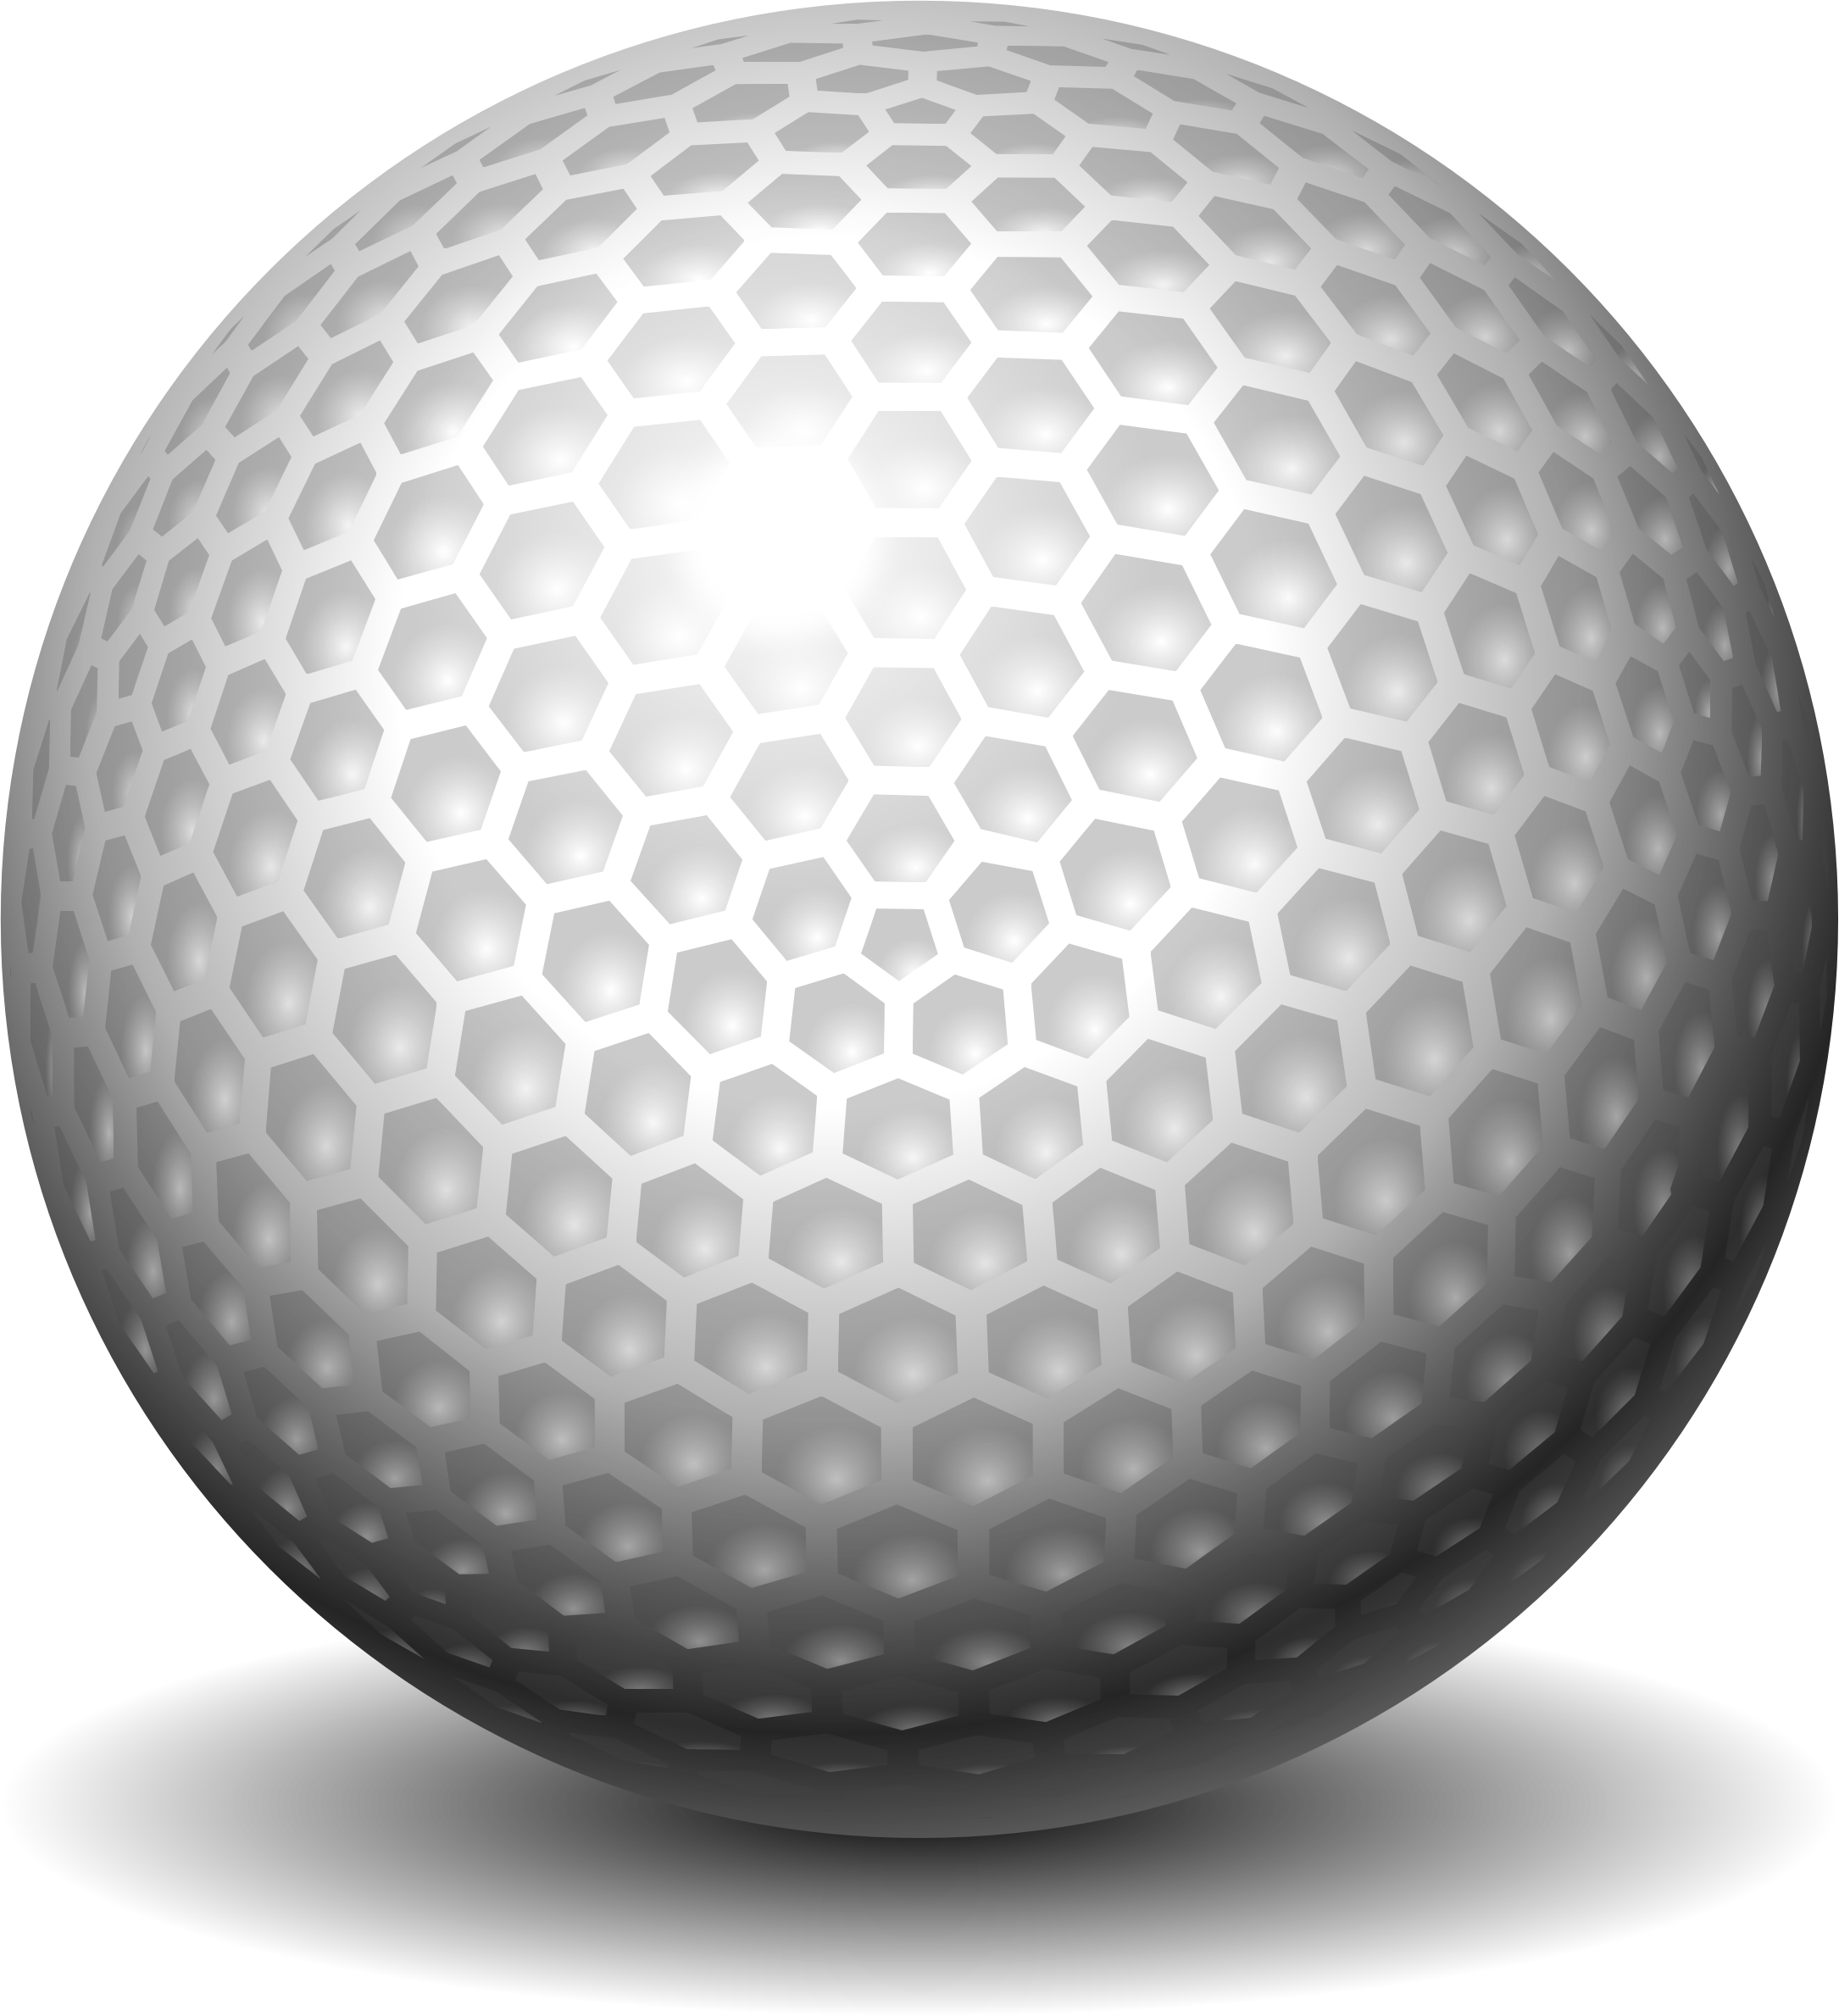 Ball clip transparent background. Field hockey png arts